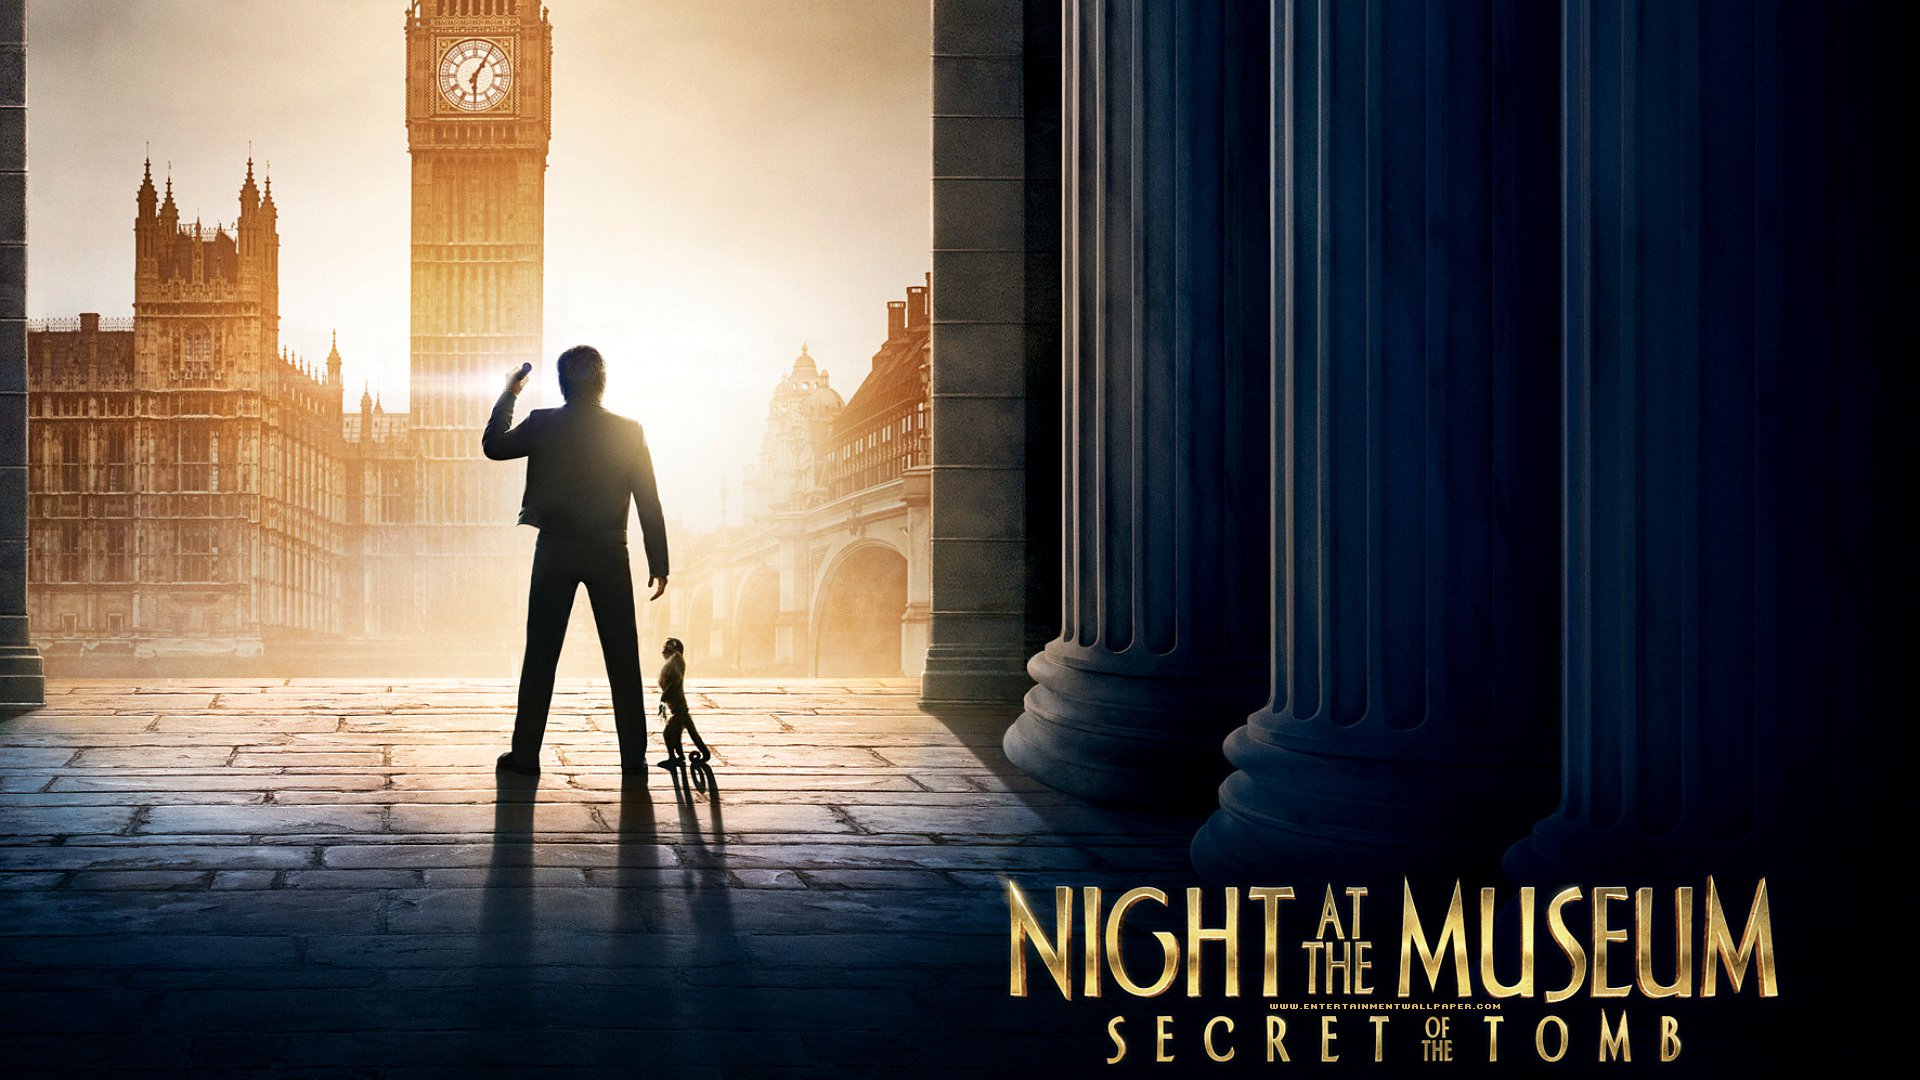 Night At The Museum: Secret Of The Tomb HQ wallpapers